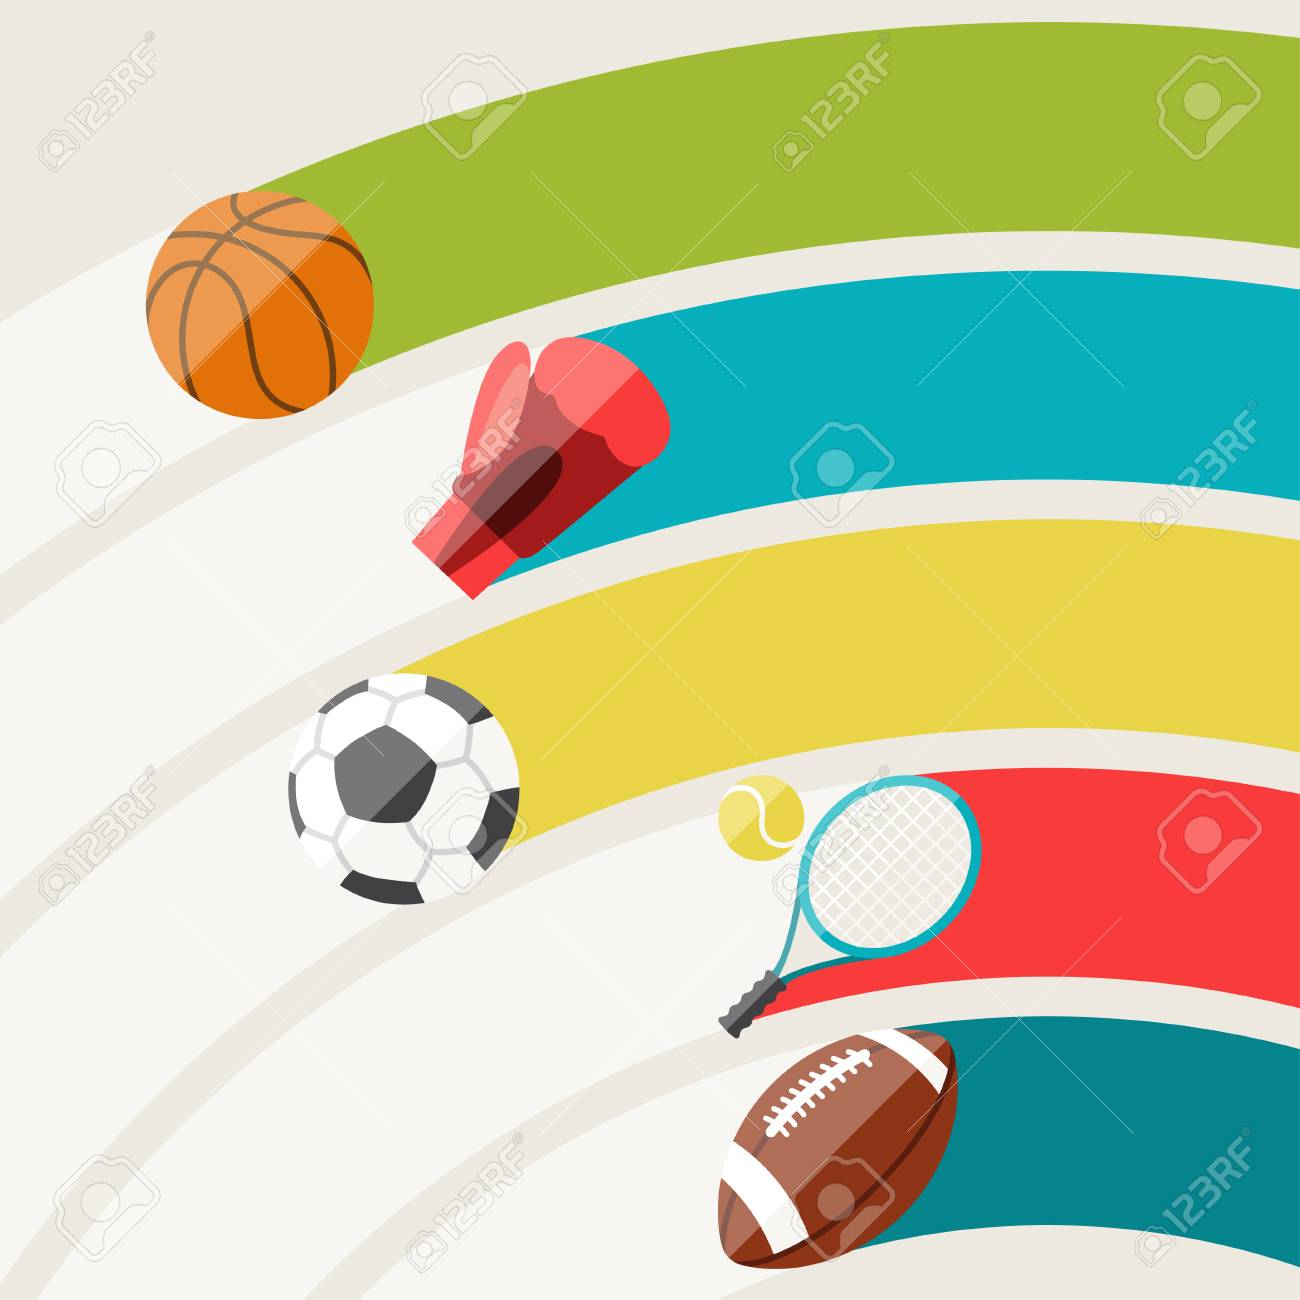 Abstract background with sport icons. Stock Vector - 25522964